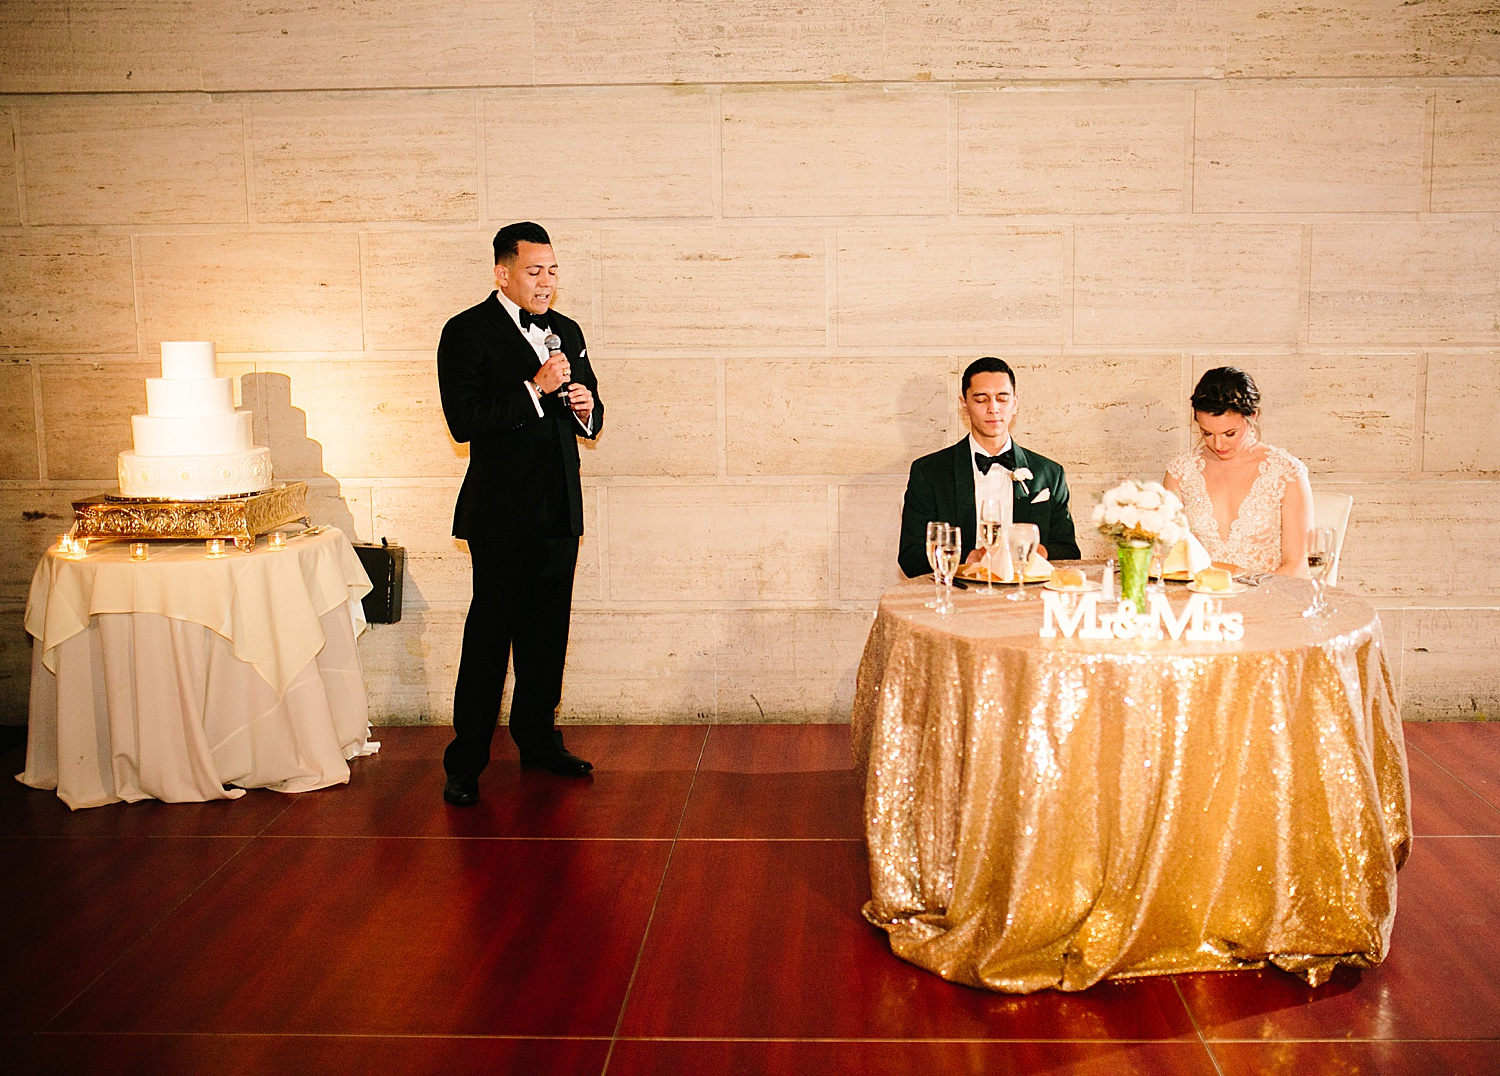 kirstentony_uniontrust_finleycatering_christchurch_philadelphia_wedding_image_0741.jpg